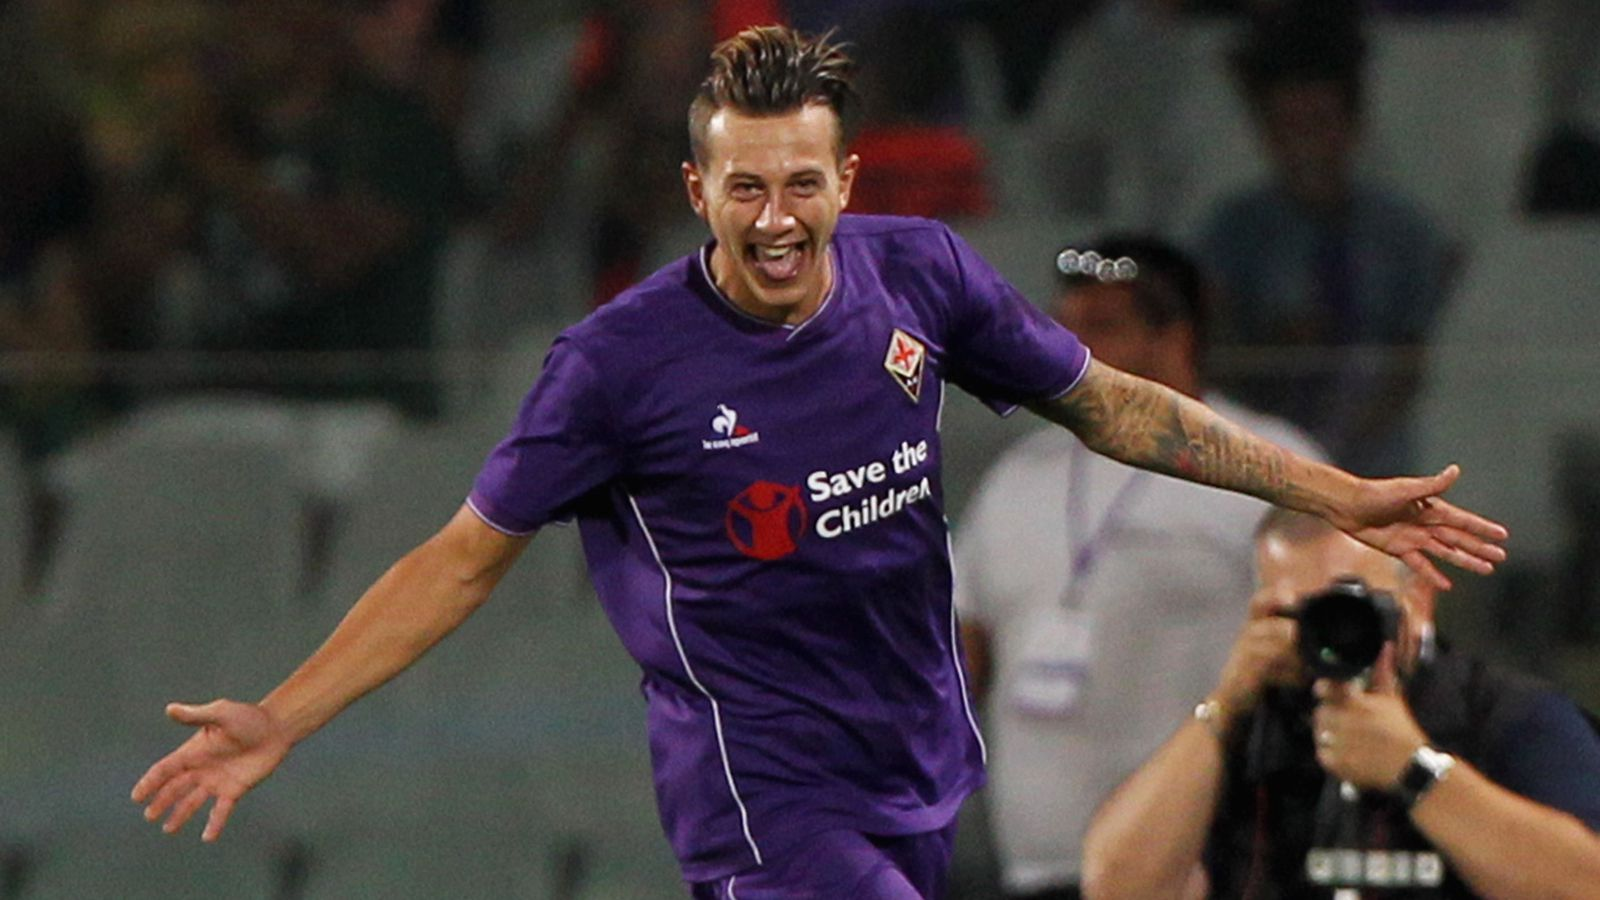 Chelsea Vs Fiorentina: Chelsea Vs. Fiorentina Live Stream: Time, TV Schedule And